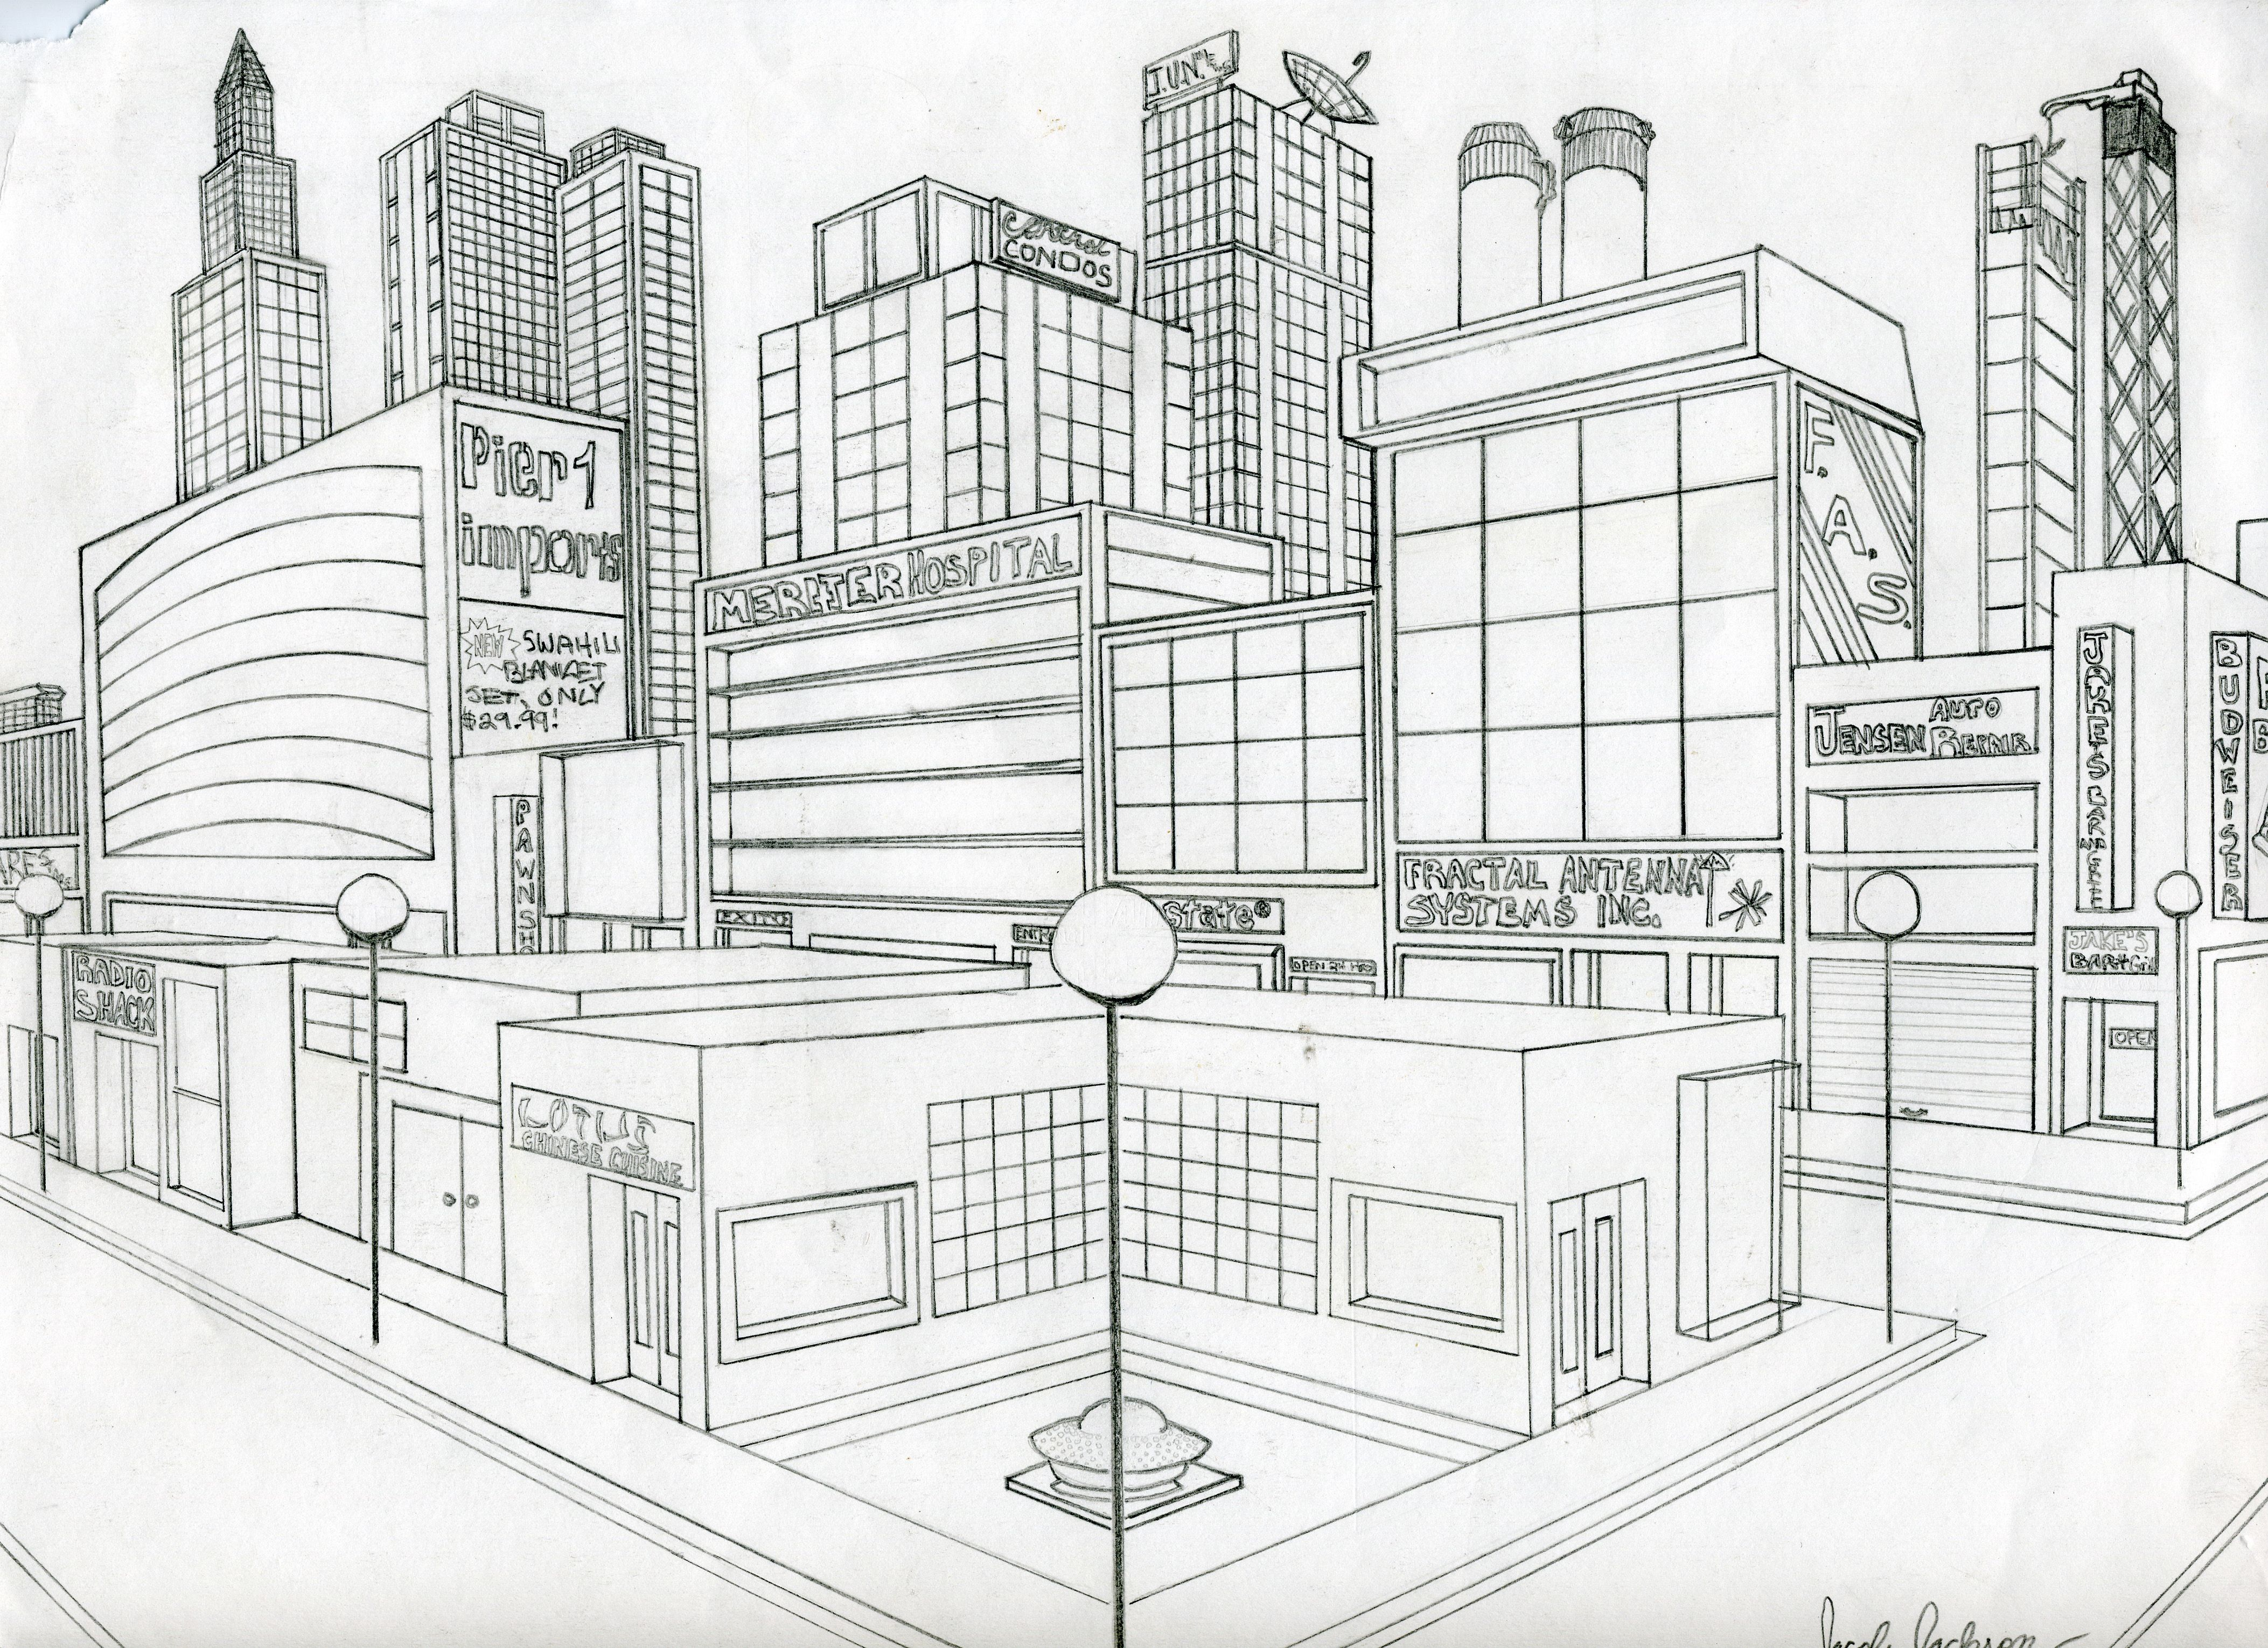 I Like This Two Point City Scape Because It Is Nice And